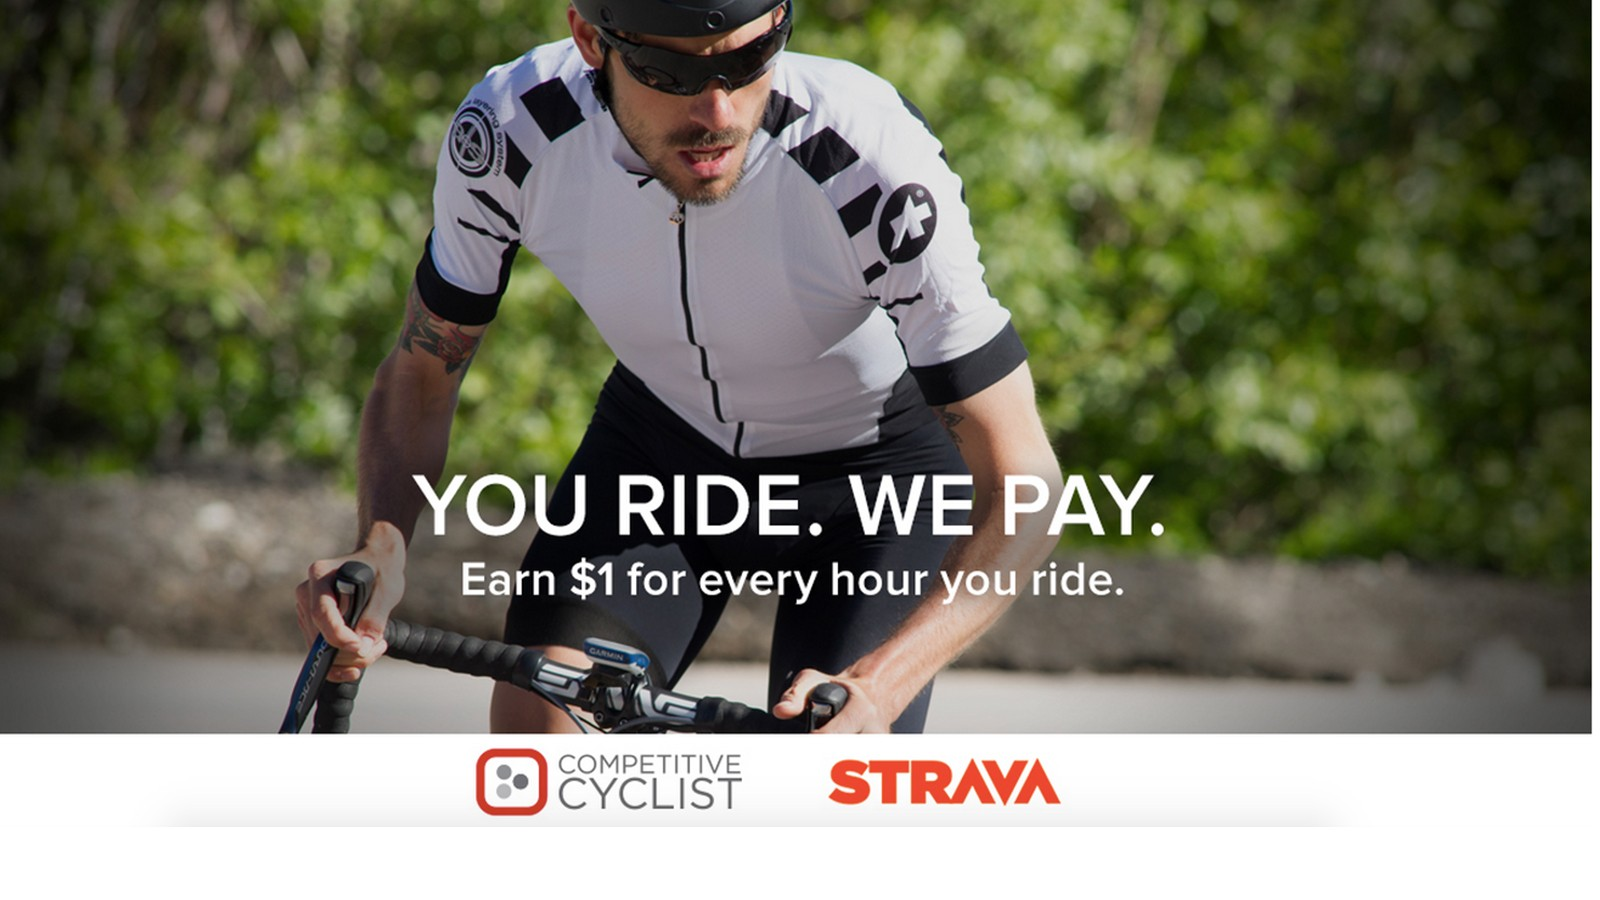 Strava and Competitive Cyclist have teamed up to give you store credit for logging hours on your bike